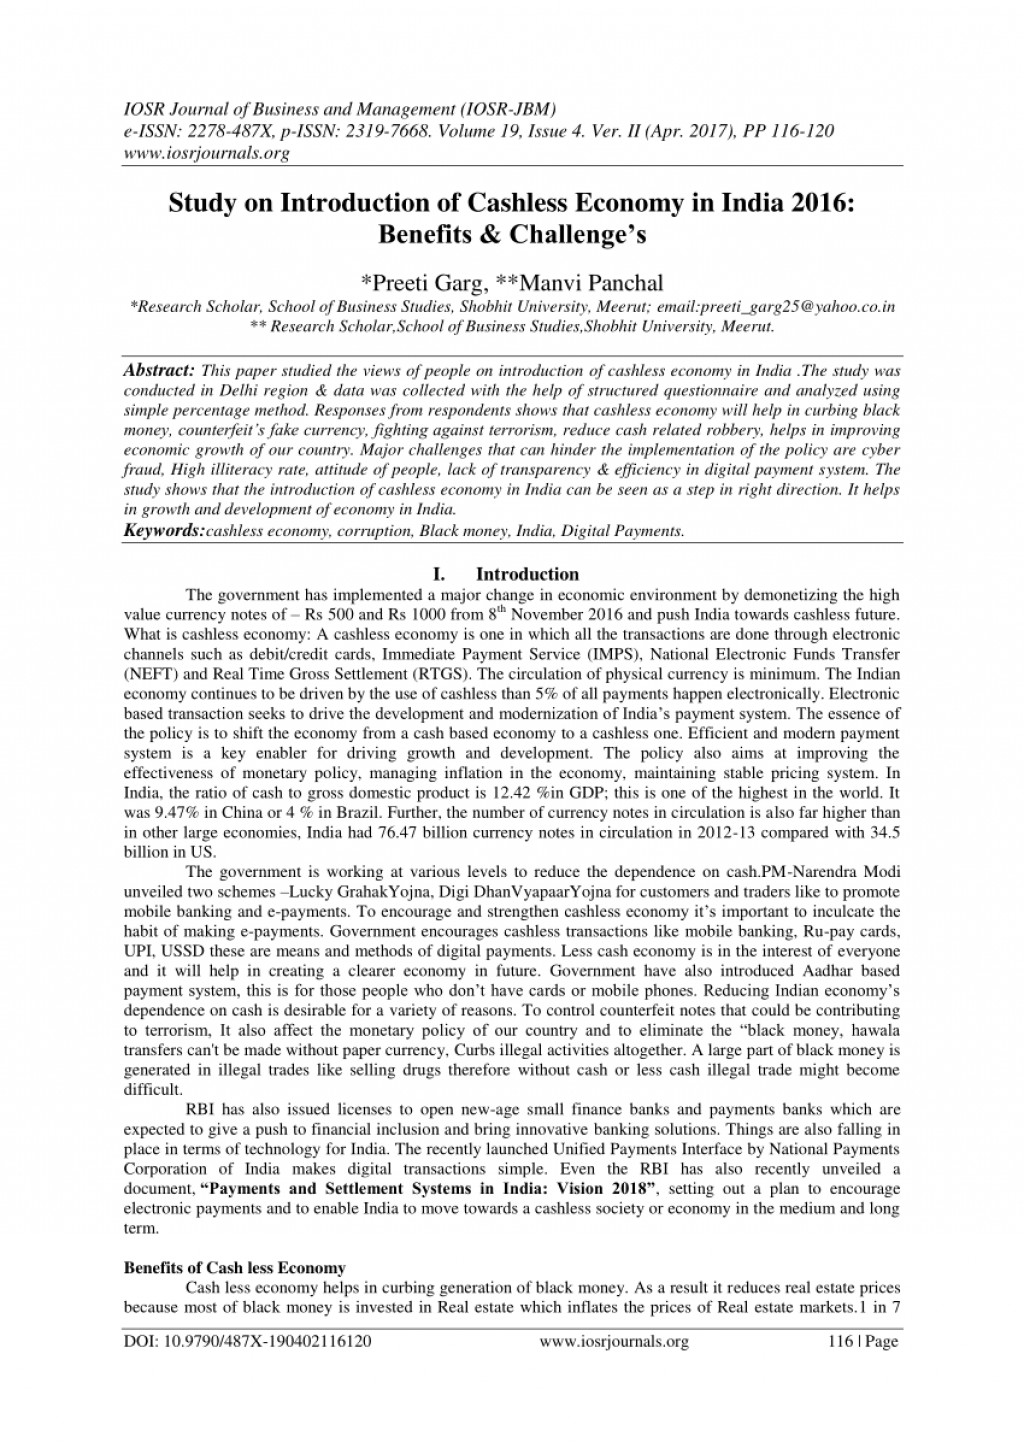 002 Research Paper Cashless Economy Frightening Papers Pdf Cash To Large